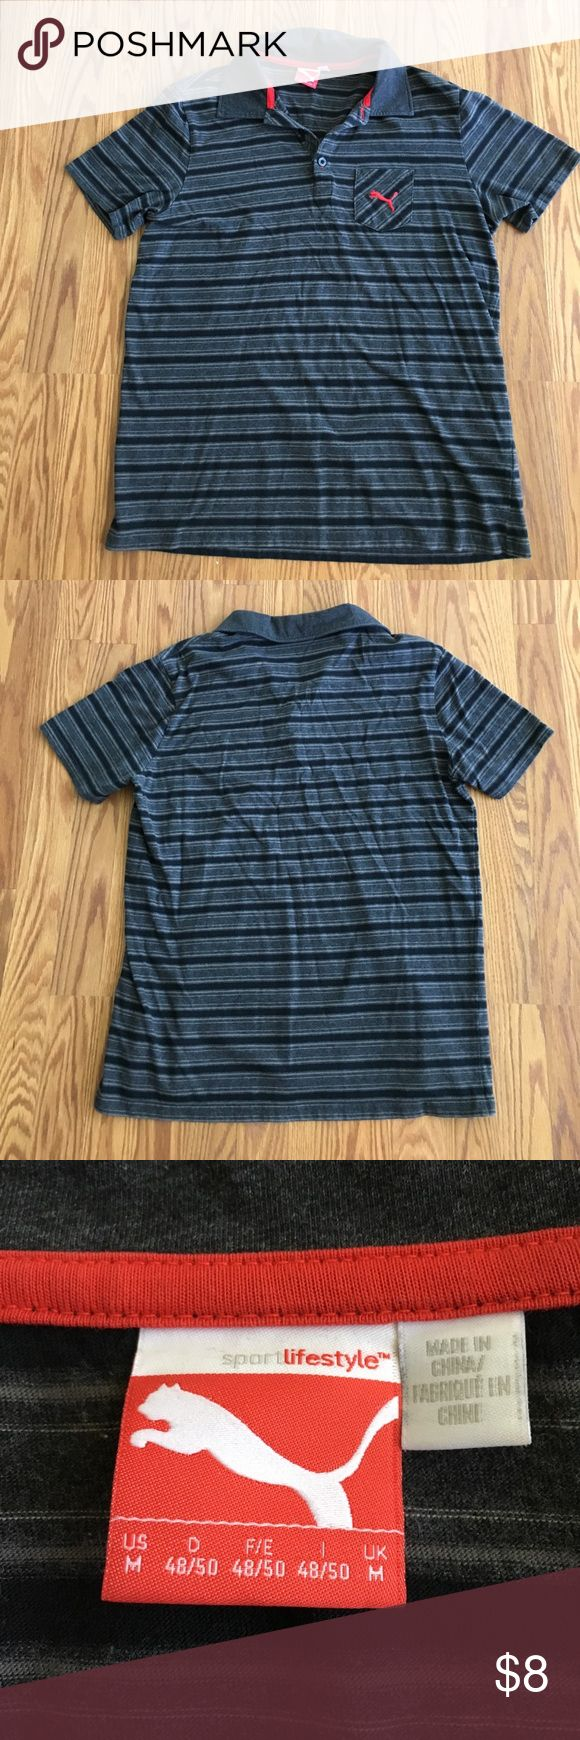 Gently Worn PUMA Collard Shirt Stay casual with this Men's PUMA Collard T-shirt! It's a seize Medium but runs a little small. Gently worn and still in great condition! 🔘👕🔘 Puma Shirts Tees - Short Sleeve